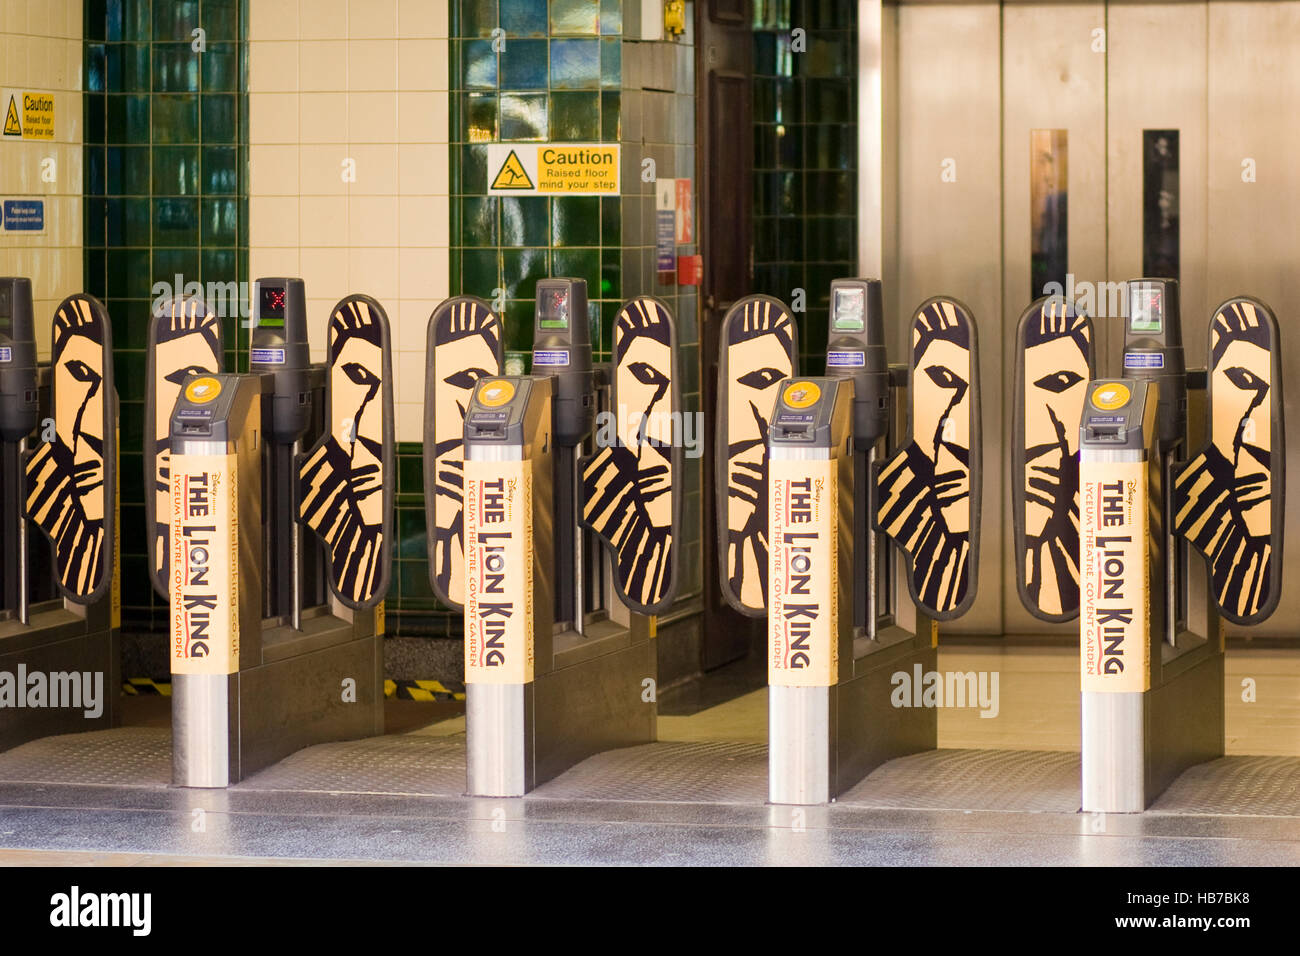 Ticket Barriers at London Underground advertising The Musical, The Lion King - Stock Image